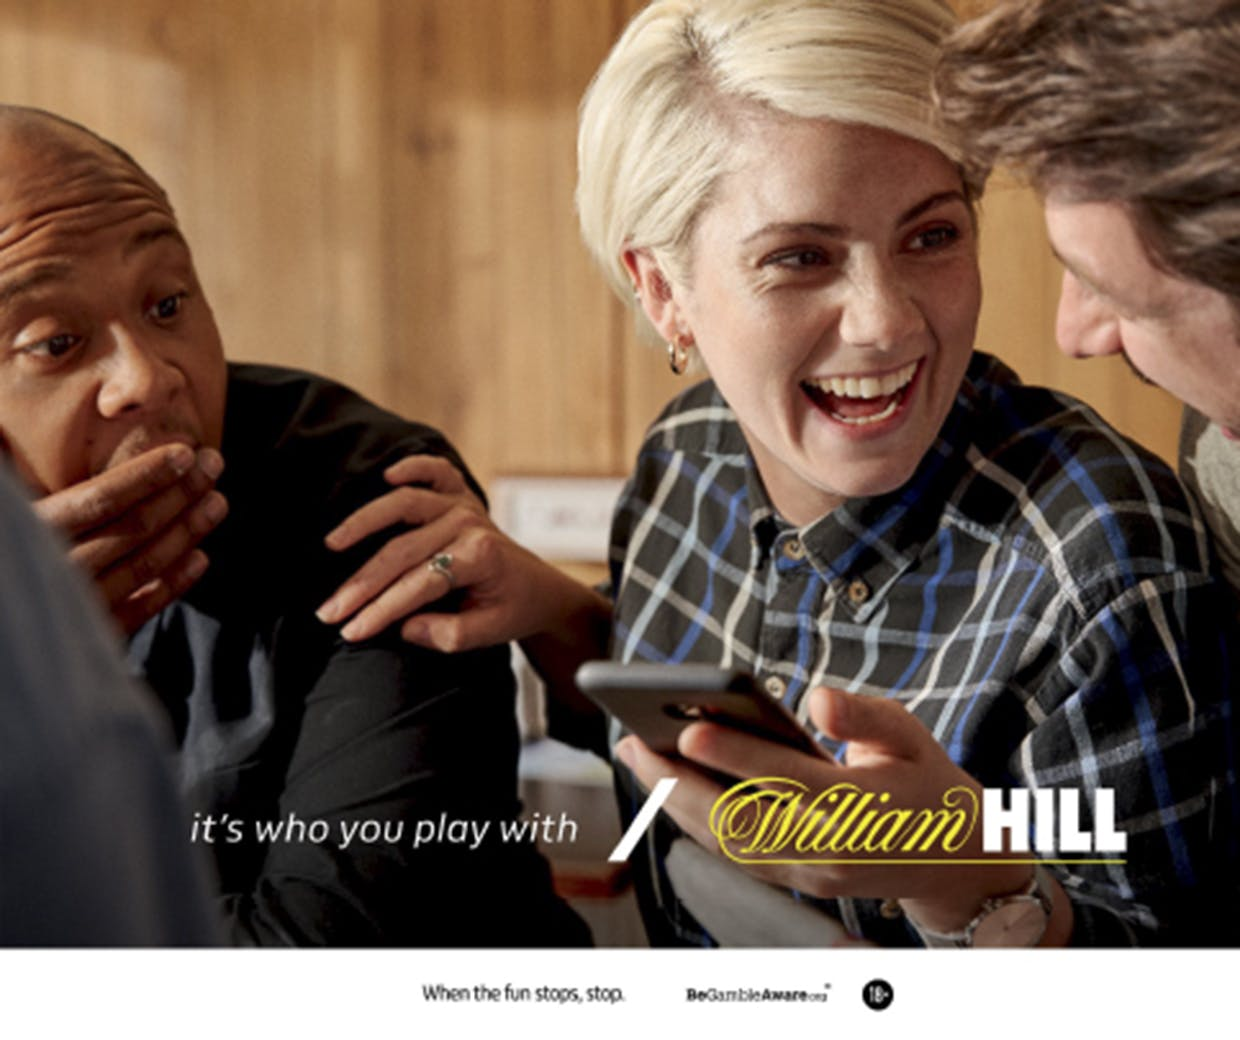 William Hill promotes social side of gambling to squash negative stereotypes